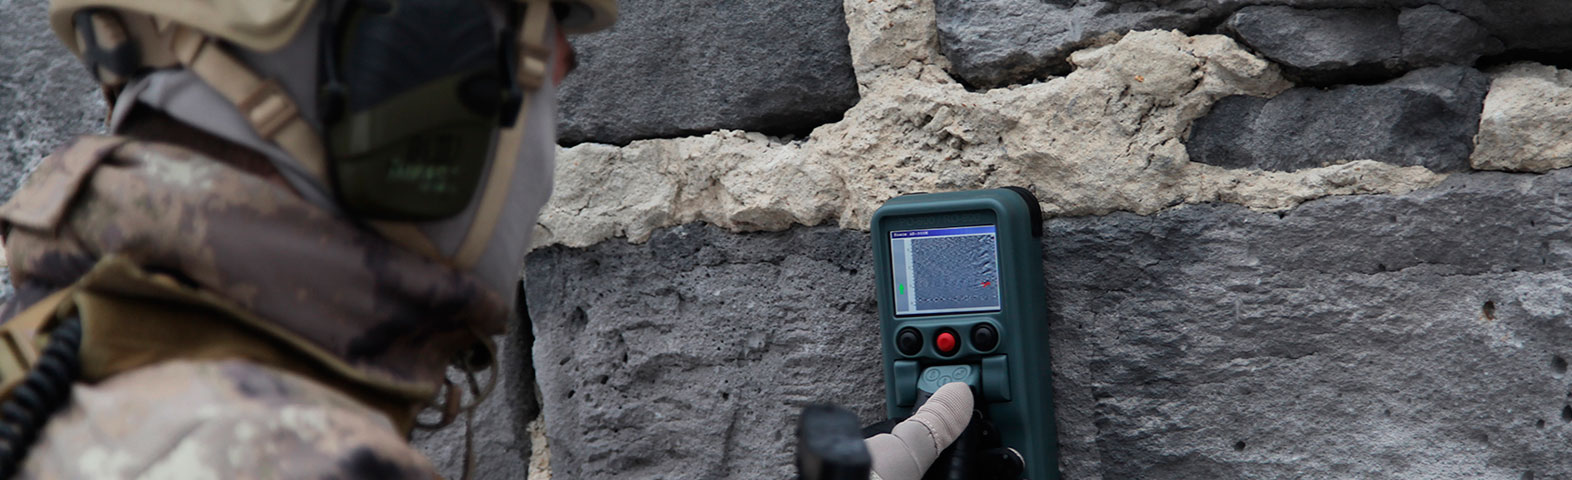 THROUGH WALL GPR DETECTOR RO-900